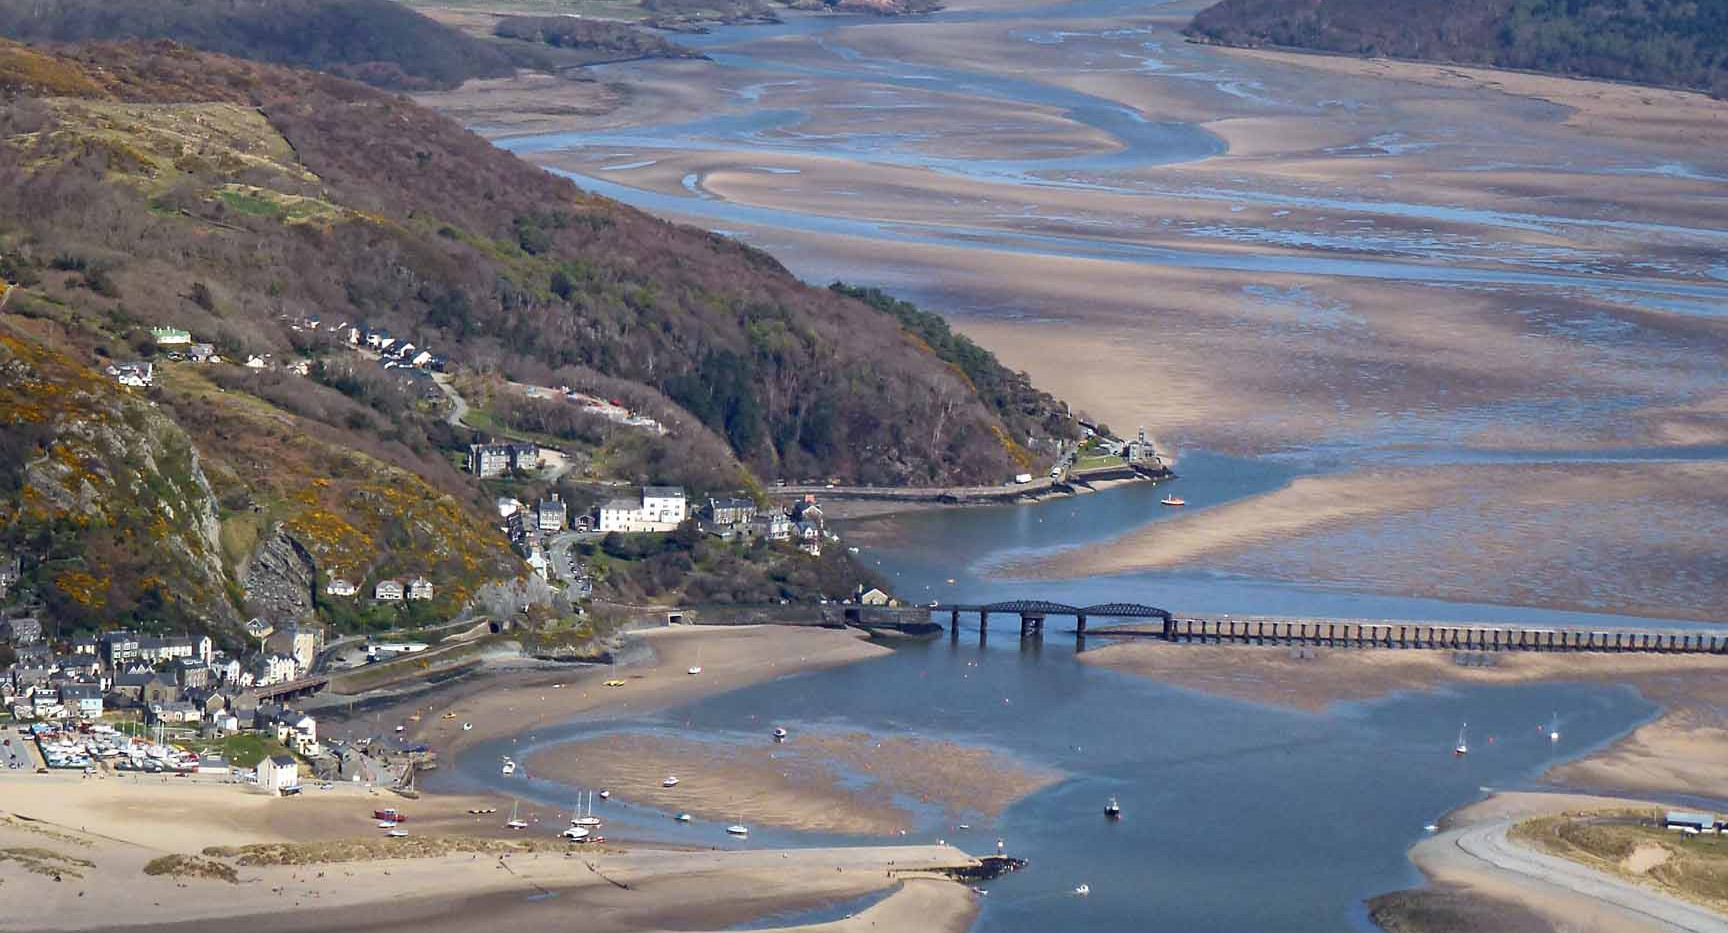 Barmouth and Mawddach estuary from the air